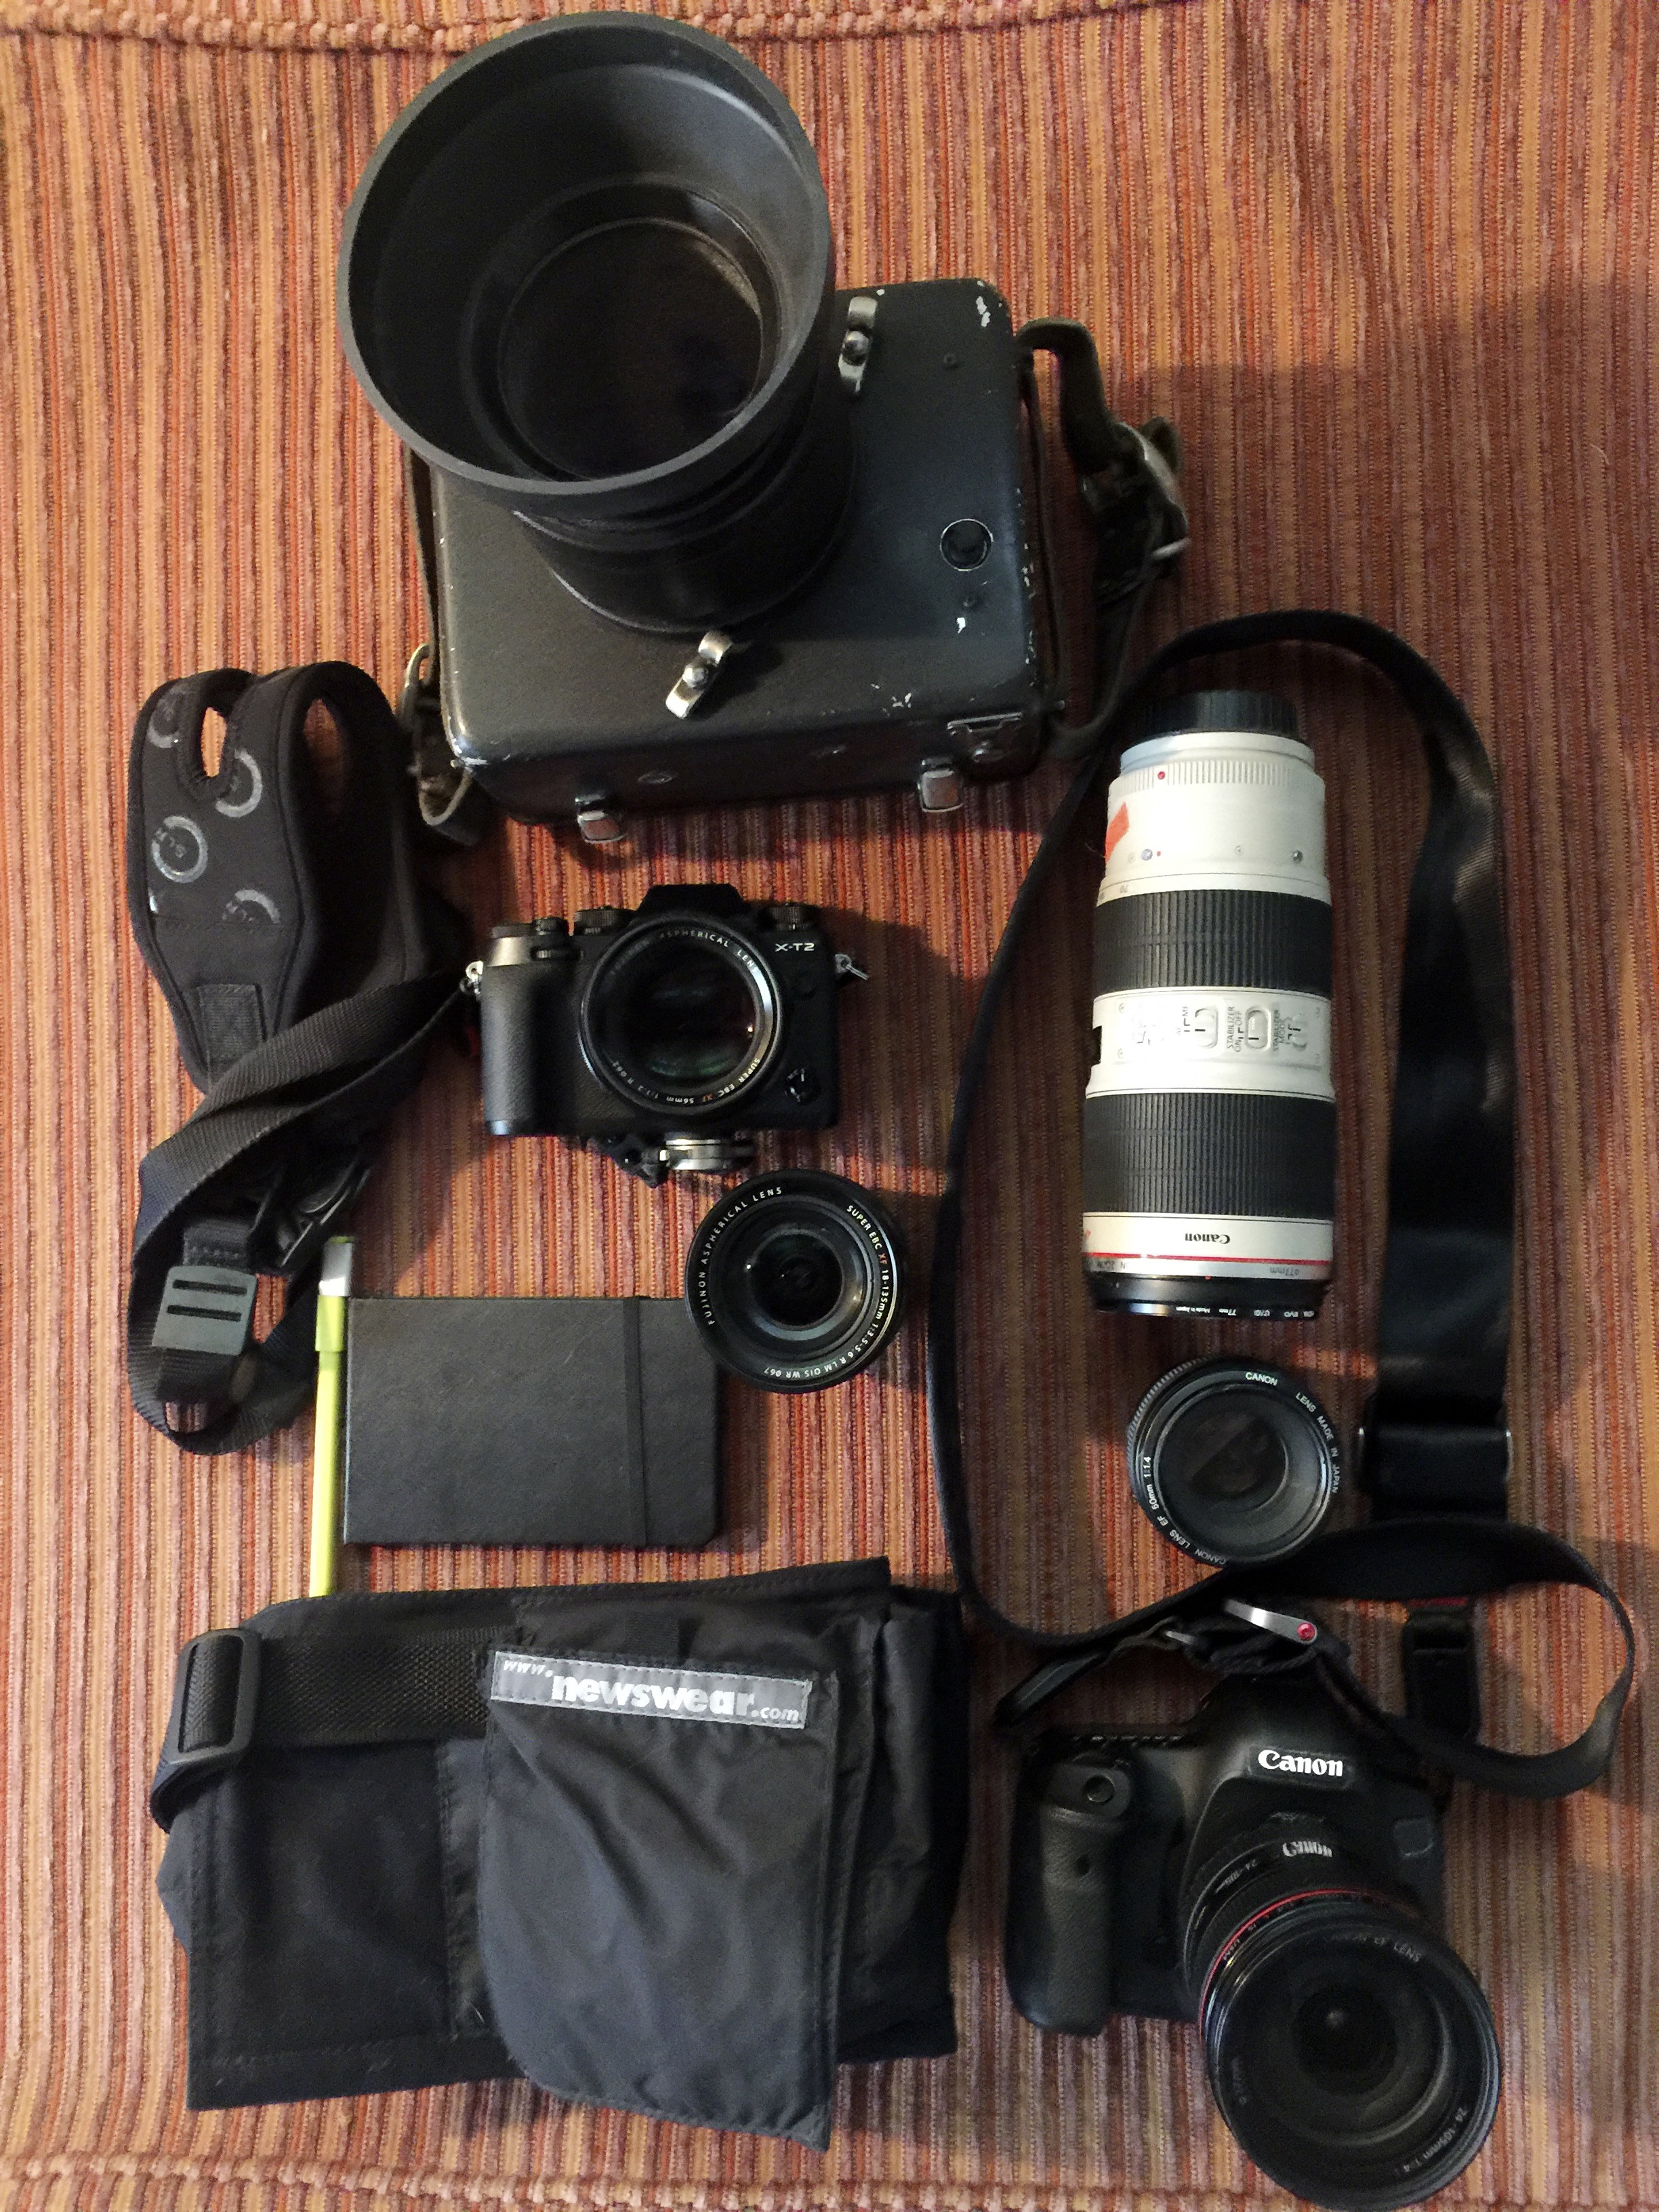 What's in your bag? VII photographers show us their gear